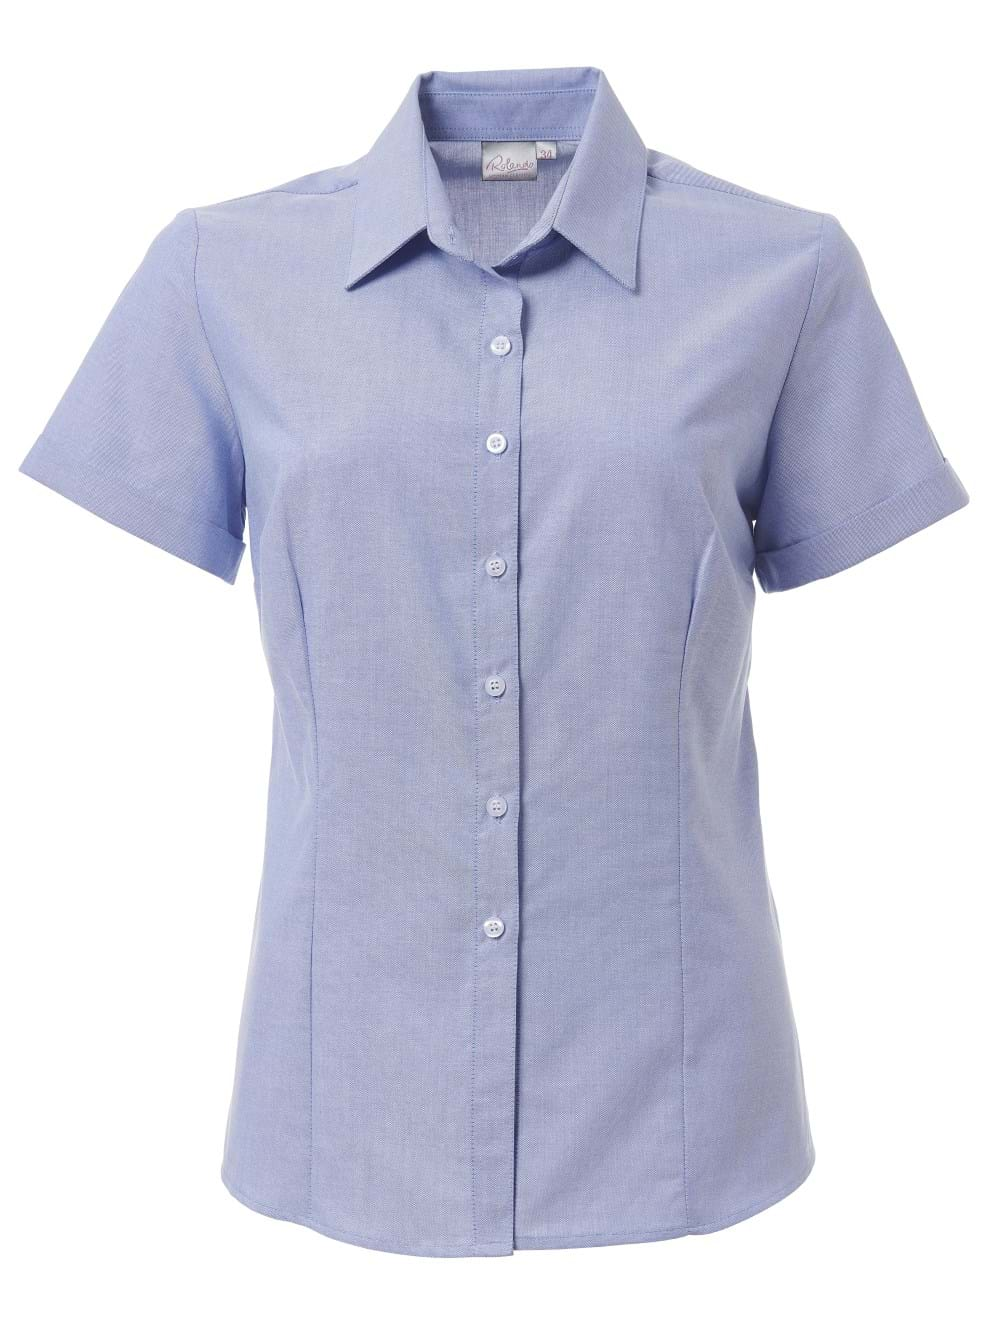 Ladies Oxford K373 S/S Blouse